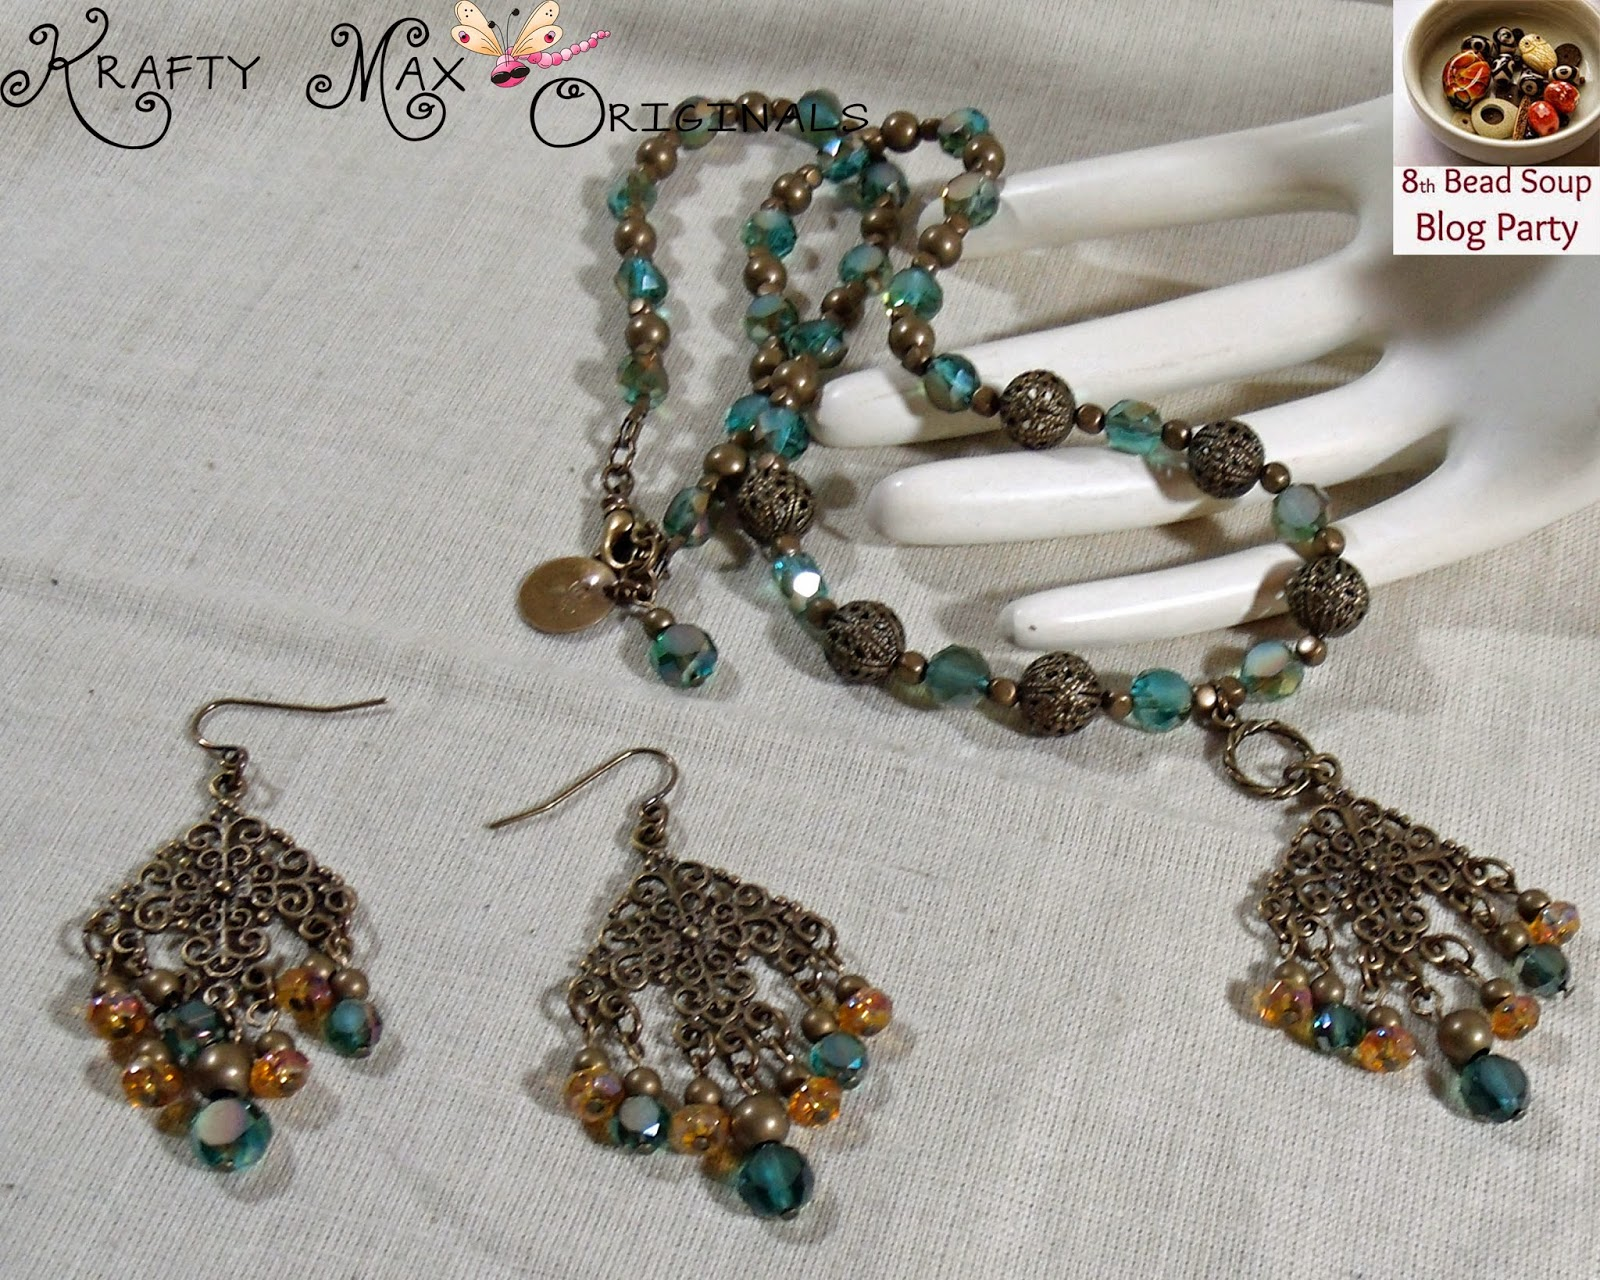 http://www.artfire.com/ext/shop/product_view/KraftyMax/9277181/8th_bead_soup_blog_party_-_teal_fan_dangle_neclace_and_earrings/handmade/jewelry/sets/crystal#